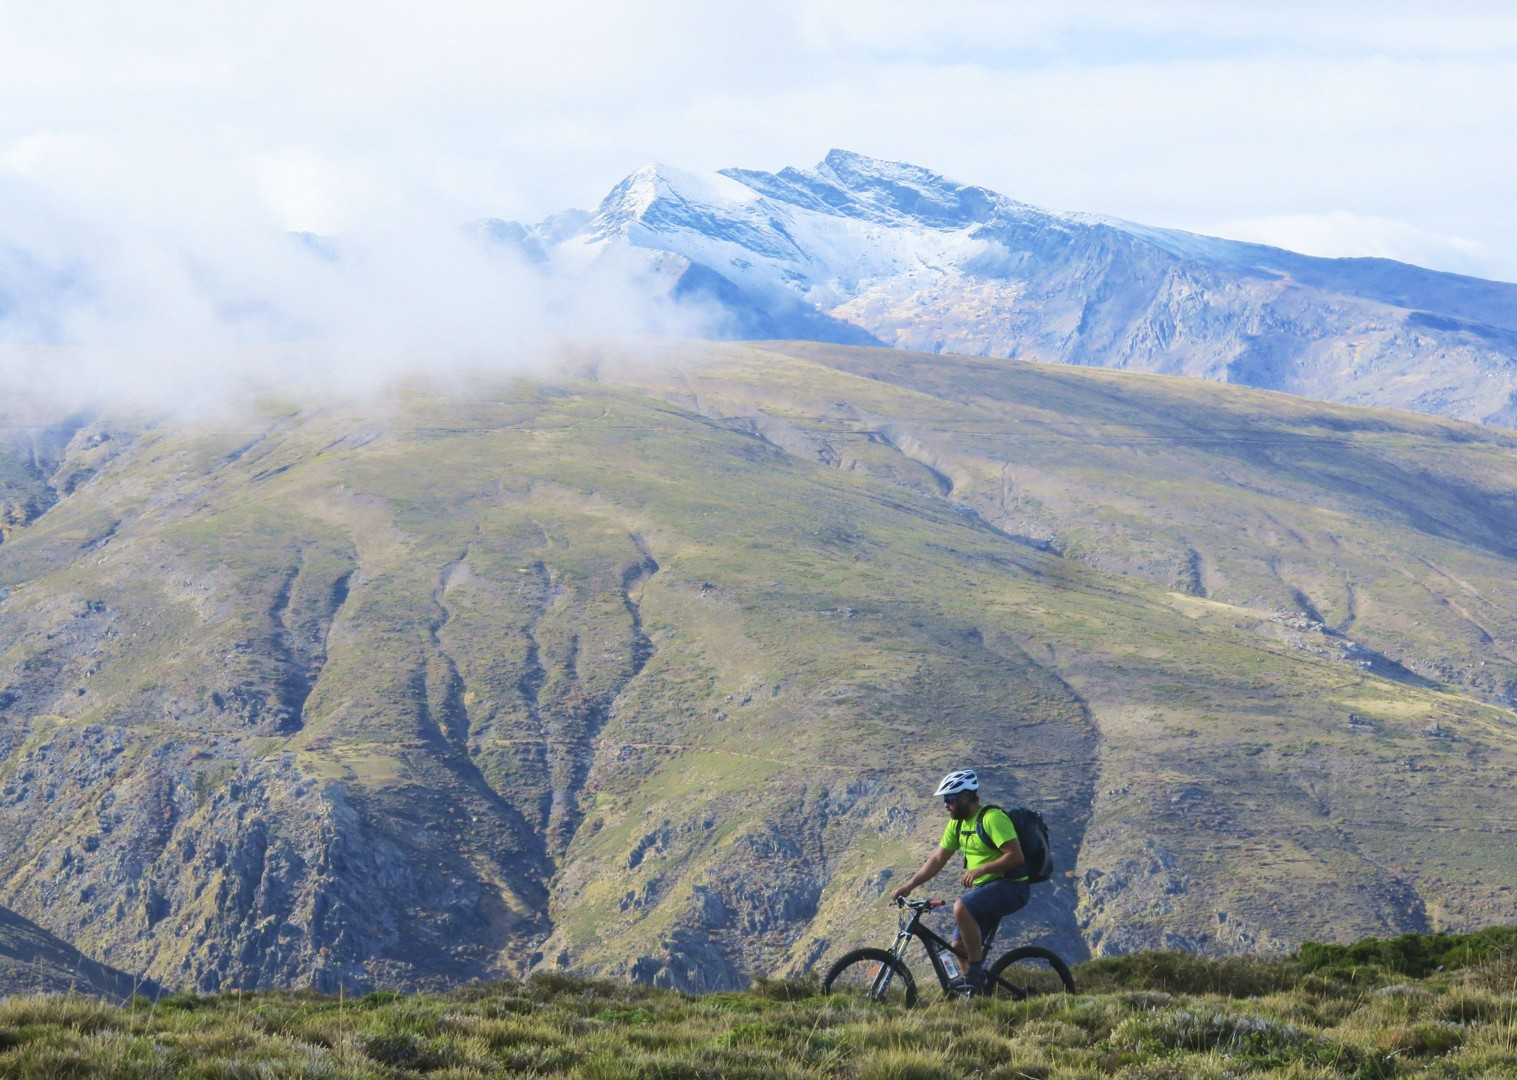 mountain-bike-holiday-in-highest-mountain-range-in-spain.jpg - Spain - Sensational Sierra Nevada - Mountain Biking